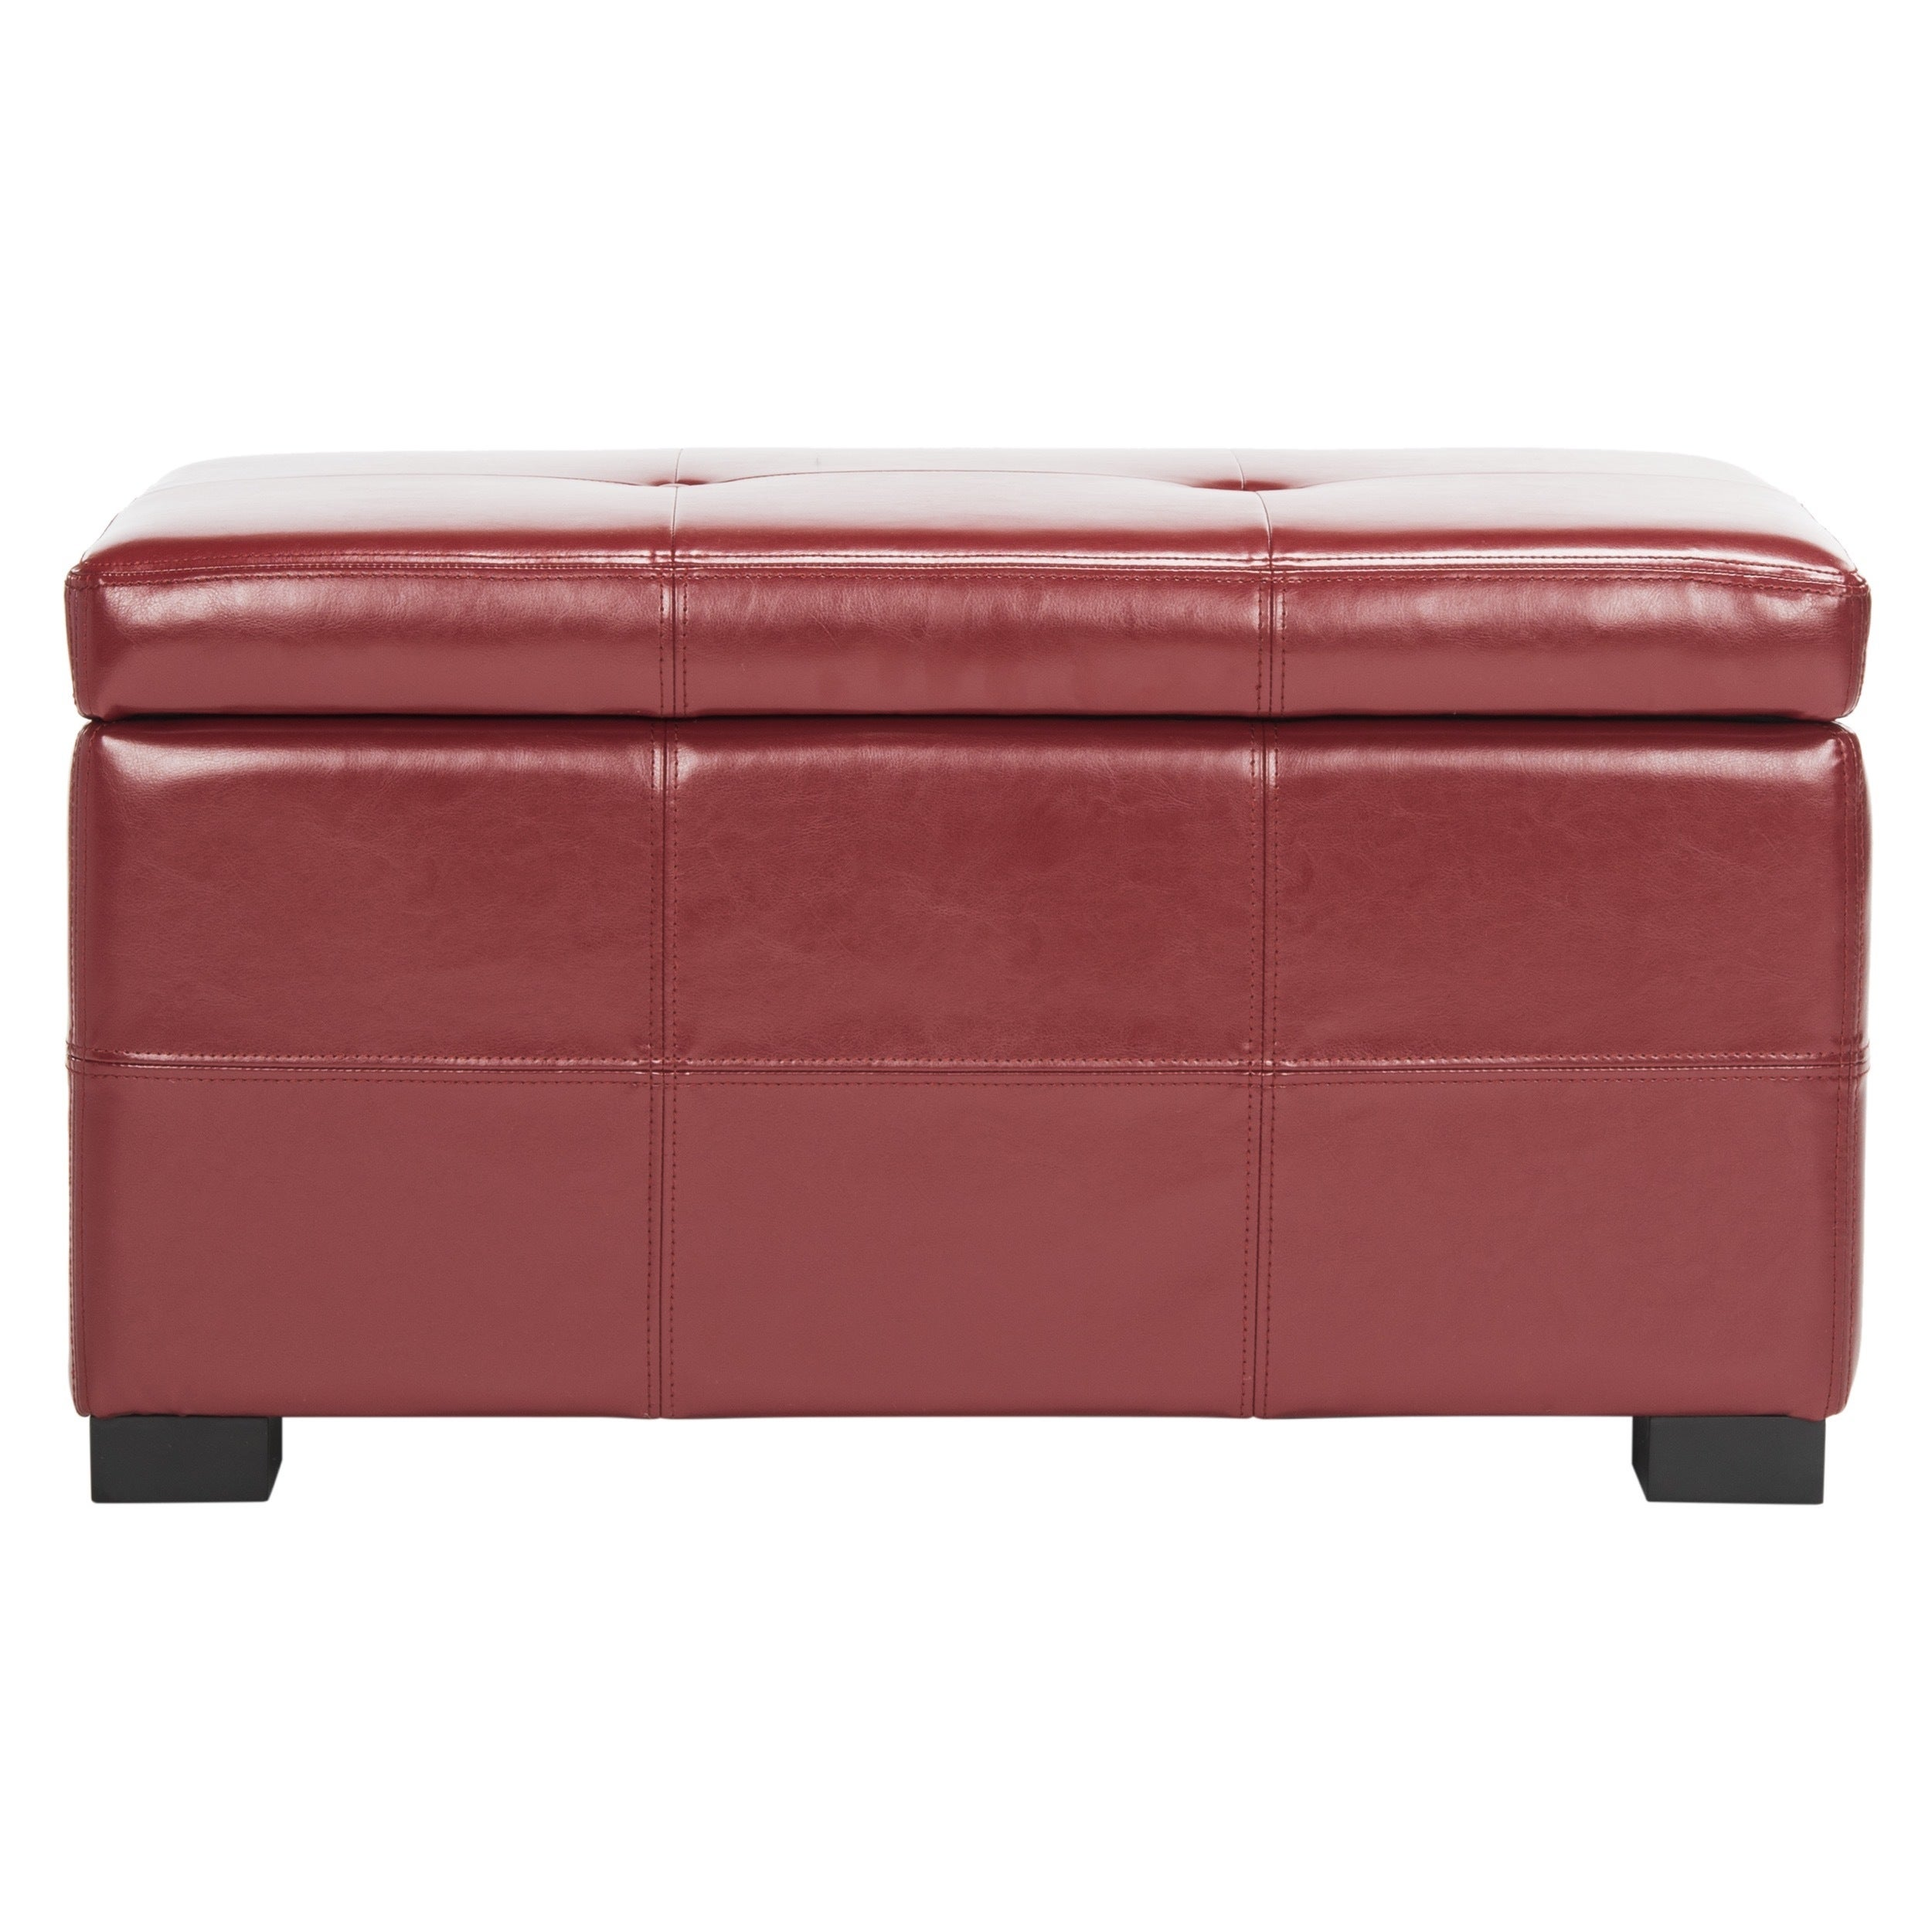 Safavieh Maiden Tufted Red Bicast Leather Storage Bench Free Shipping Today 5151890